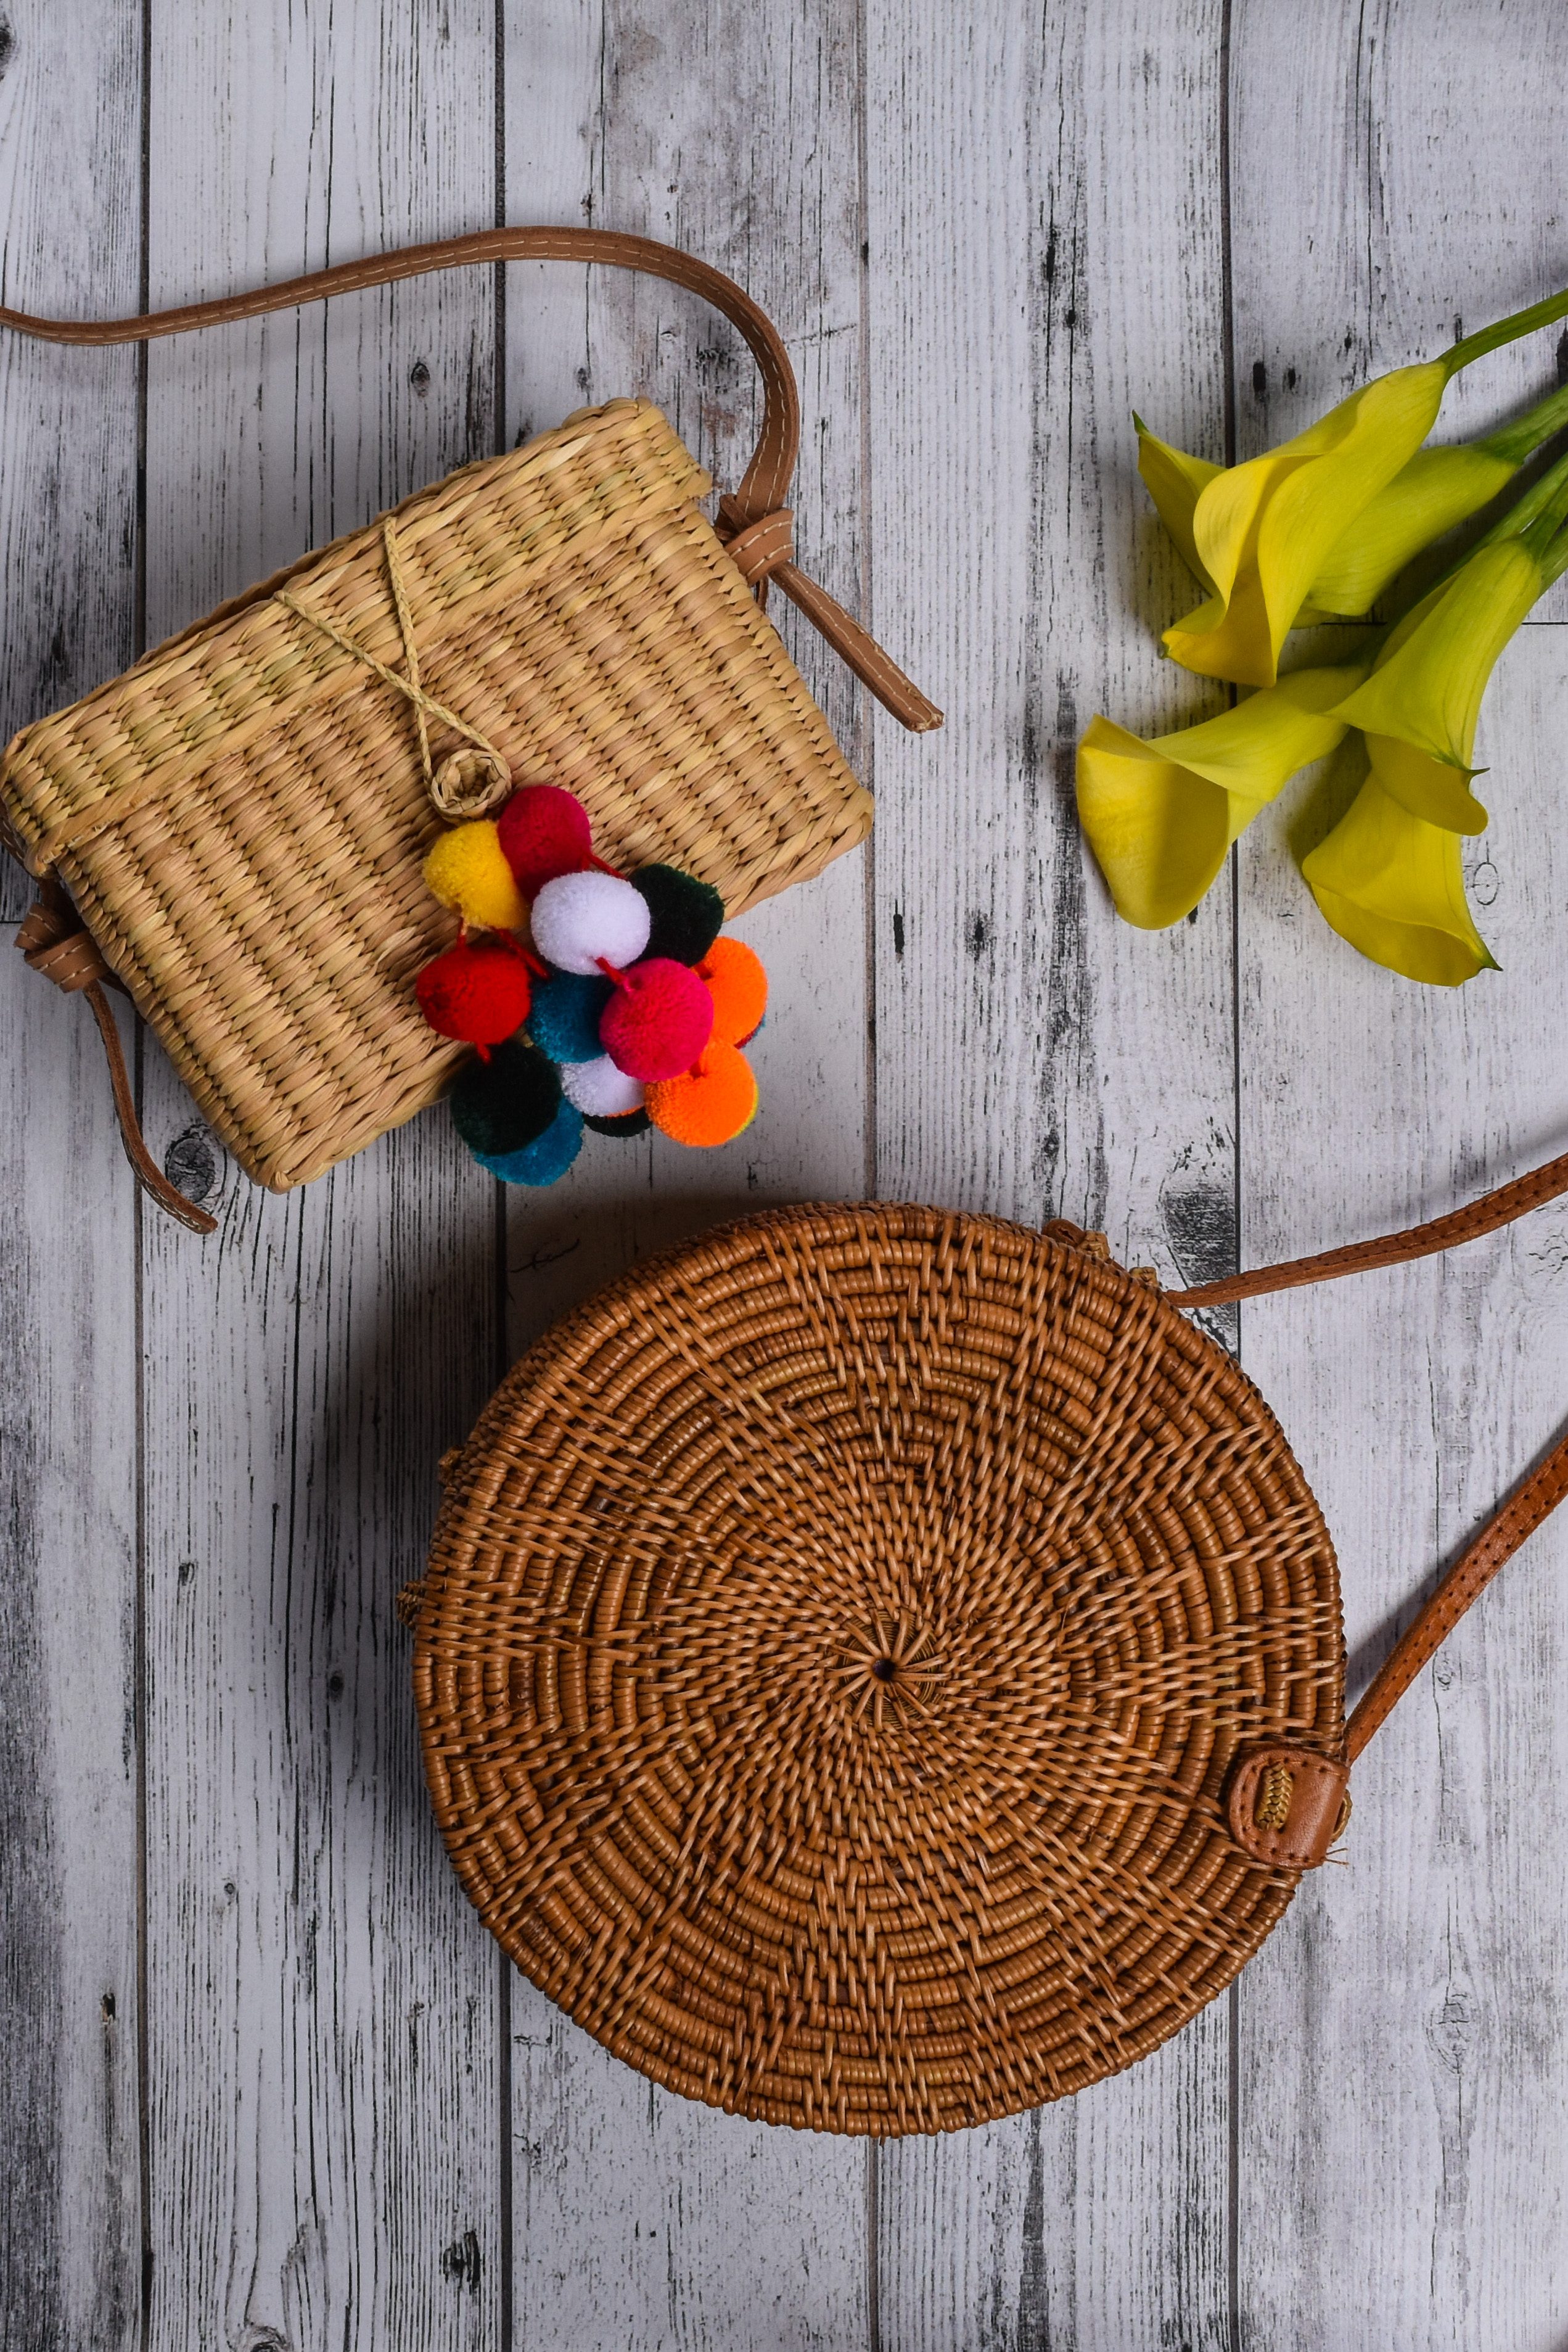 Rattan Round Straw Bag and Nannacay Baby Roge Pom Pom Straw Bags on wood table with yellow lilies